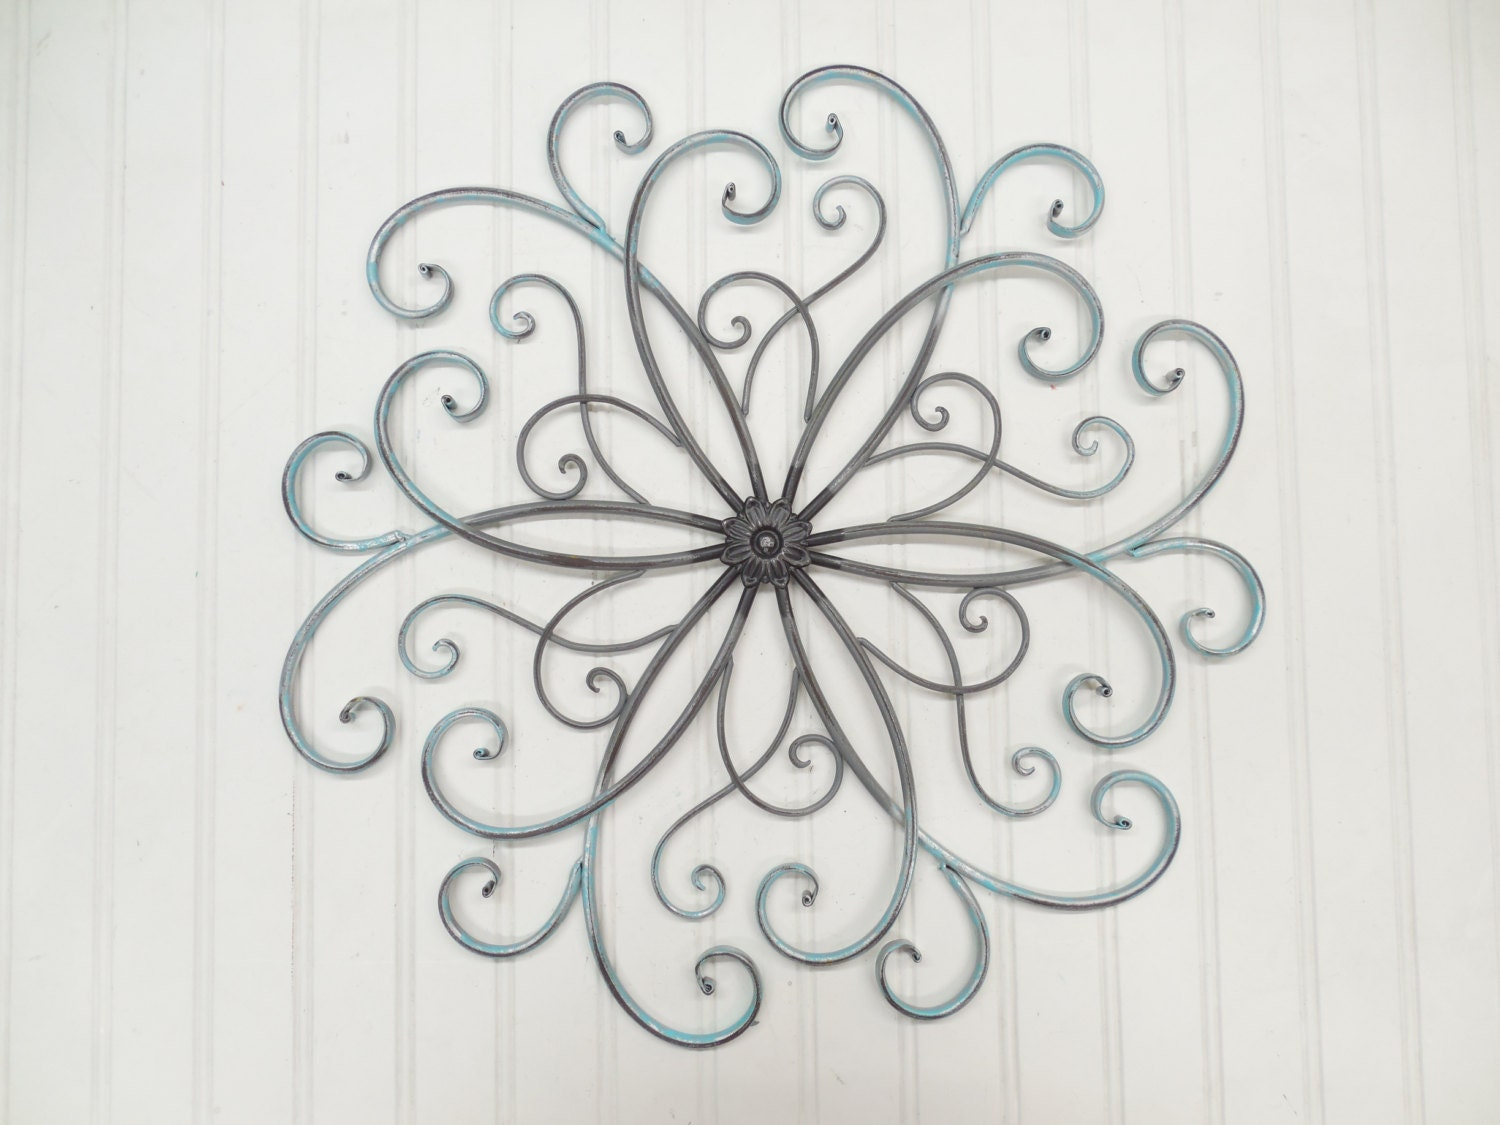 Faux wrought iron wall art you pick by theshabbystore on etsy for Outdoor garden wall decor